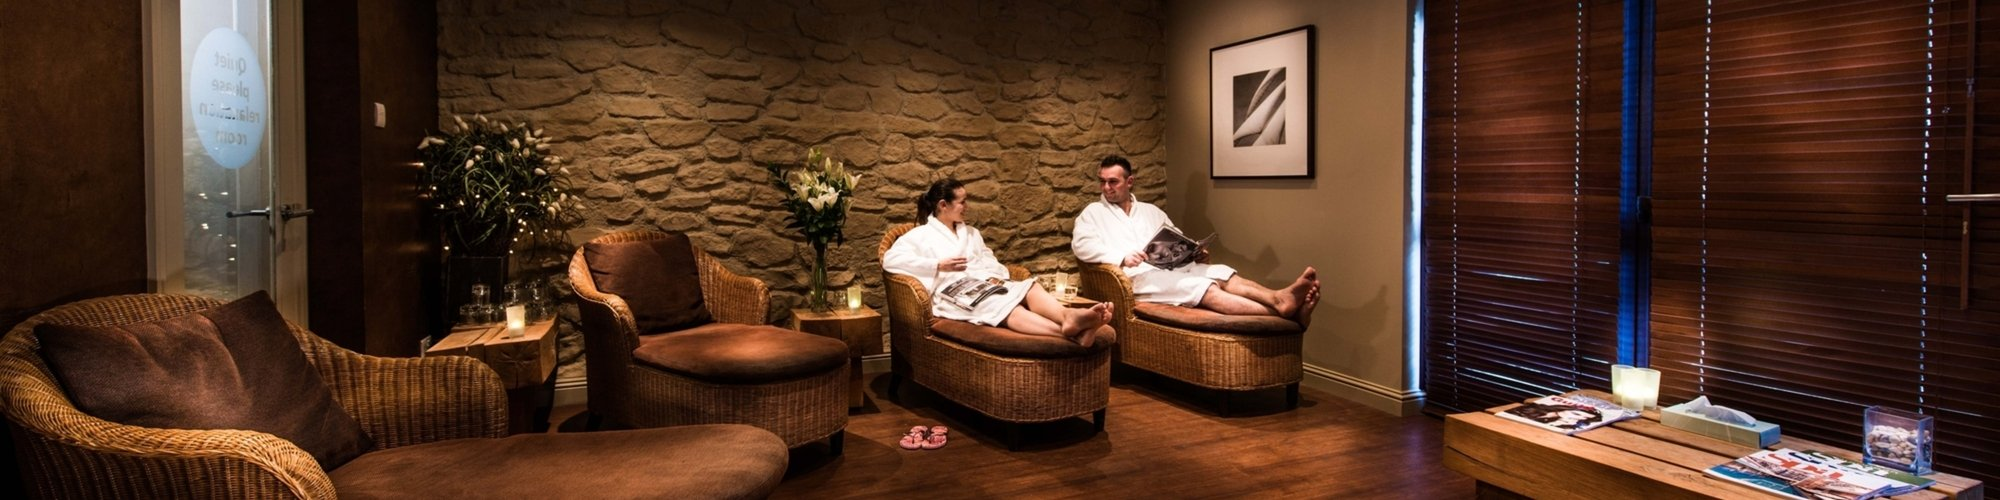 Spa & Pamper Breaks